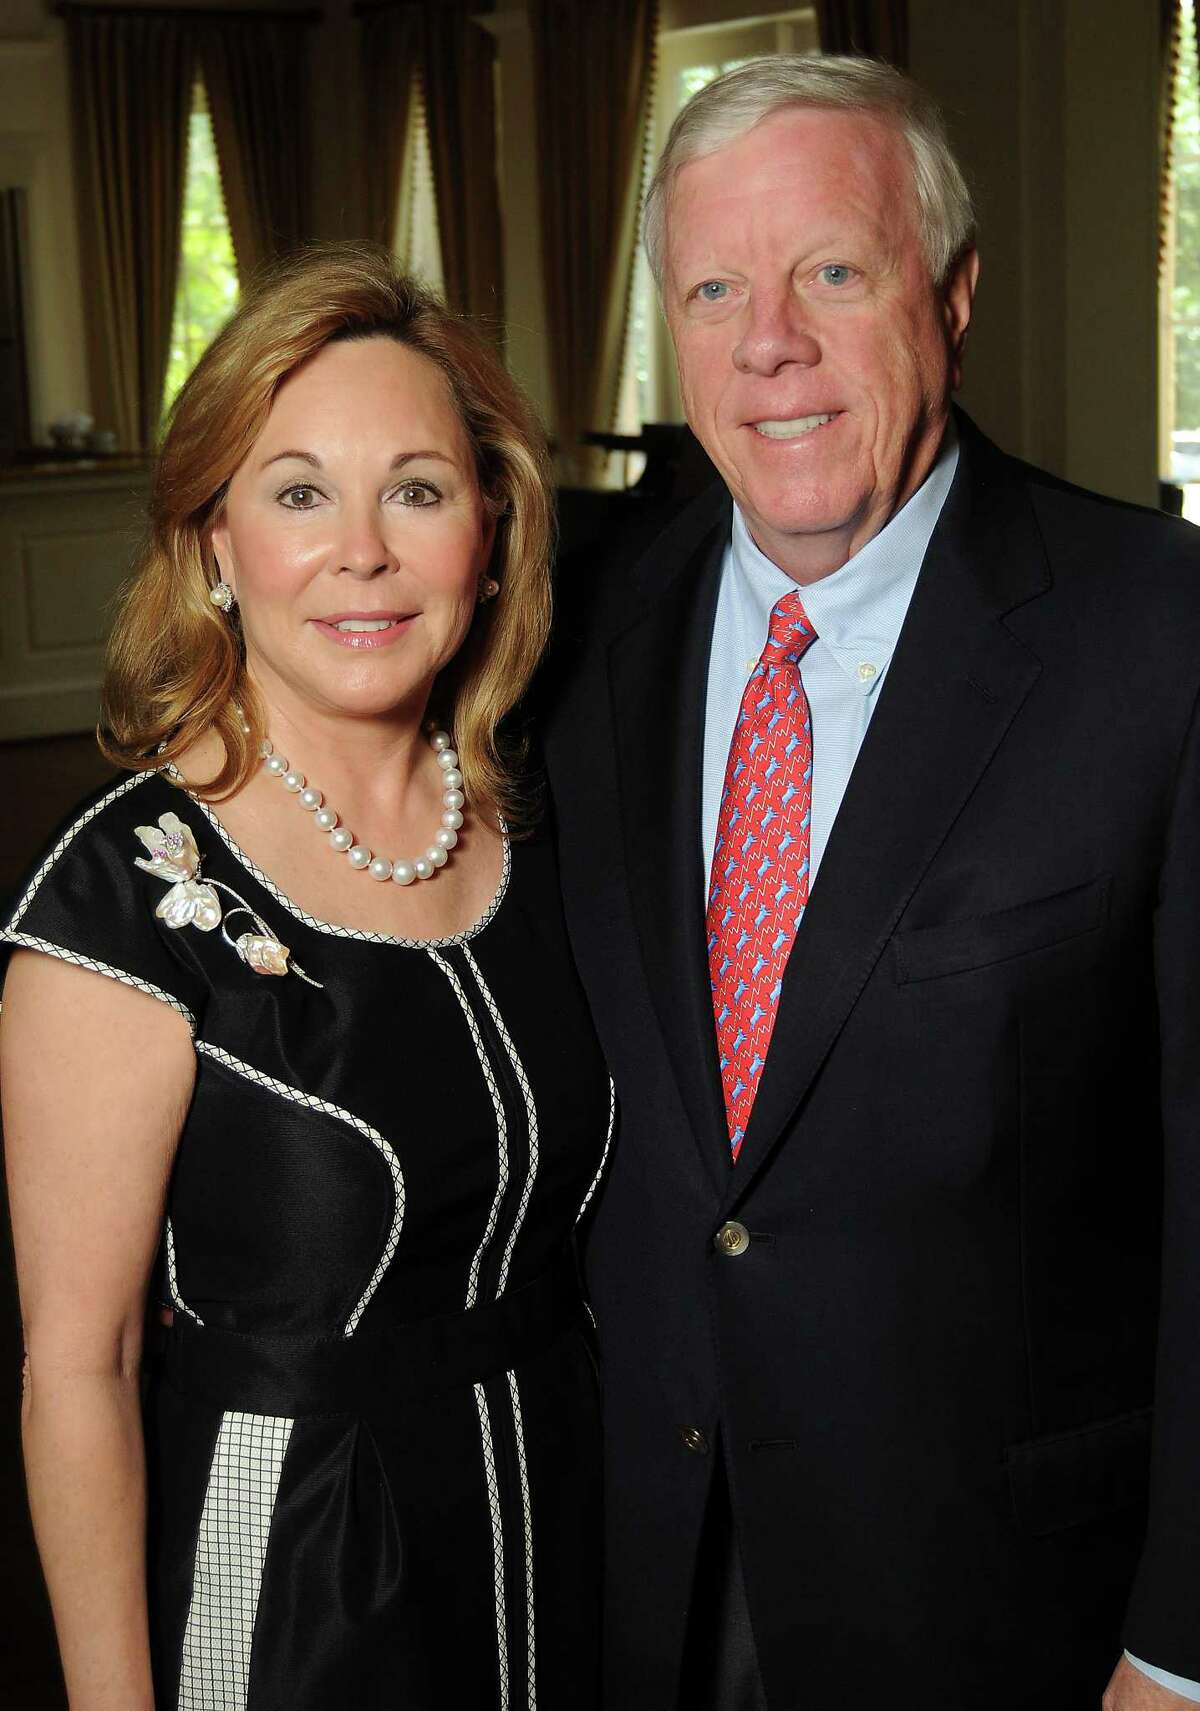 Nancy and Rich Kinder have donated more than $100 million geared toward green space transformation and education in Houston this year.